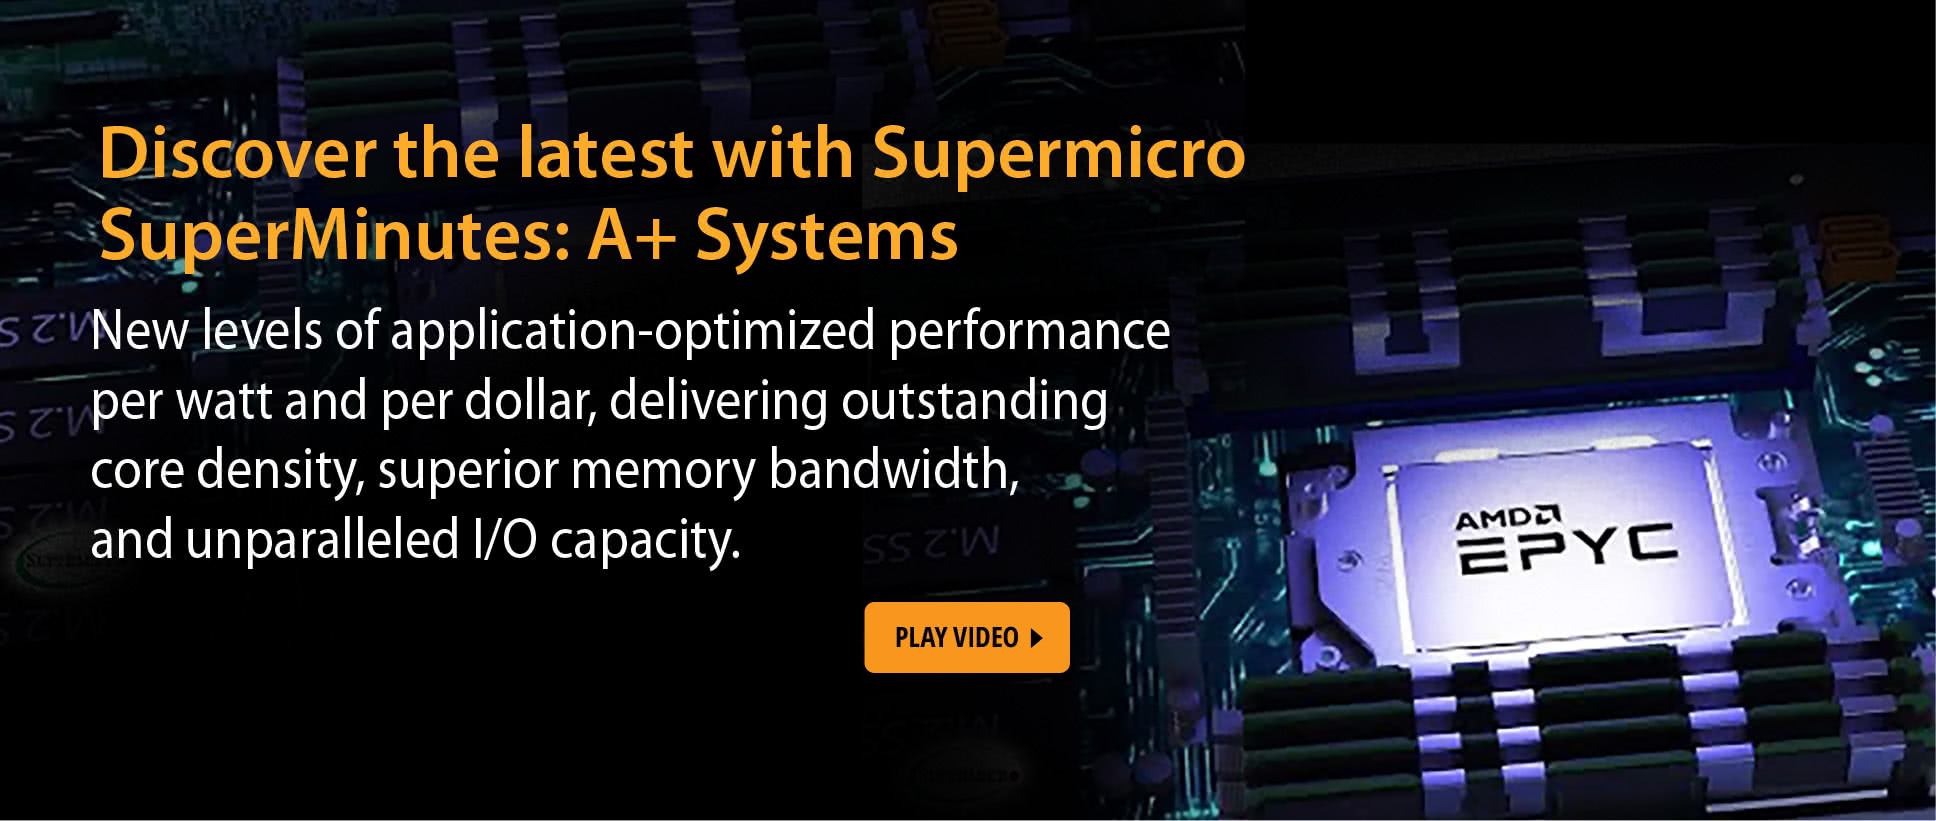 Discover the latest with Supermicro SuperMinutes: A+ Systems